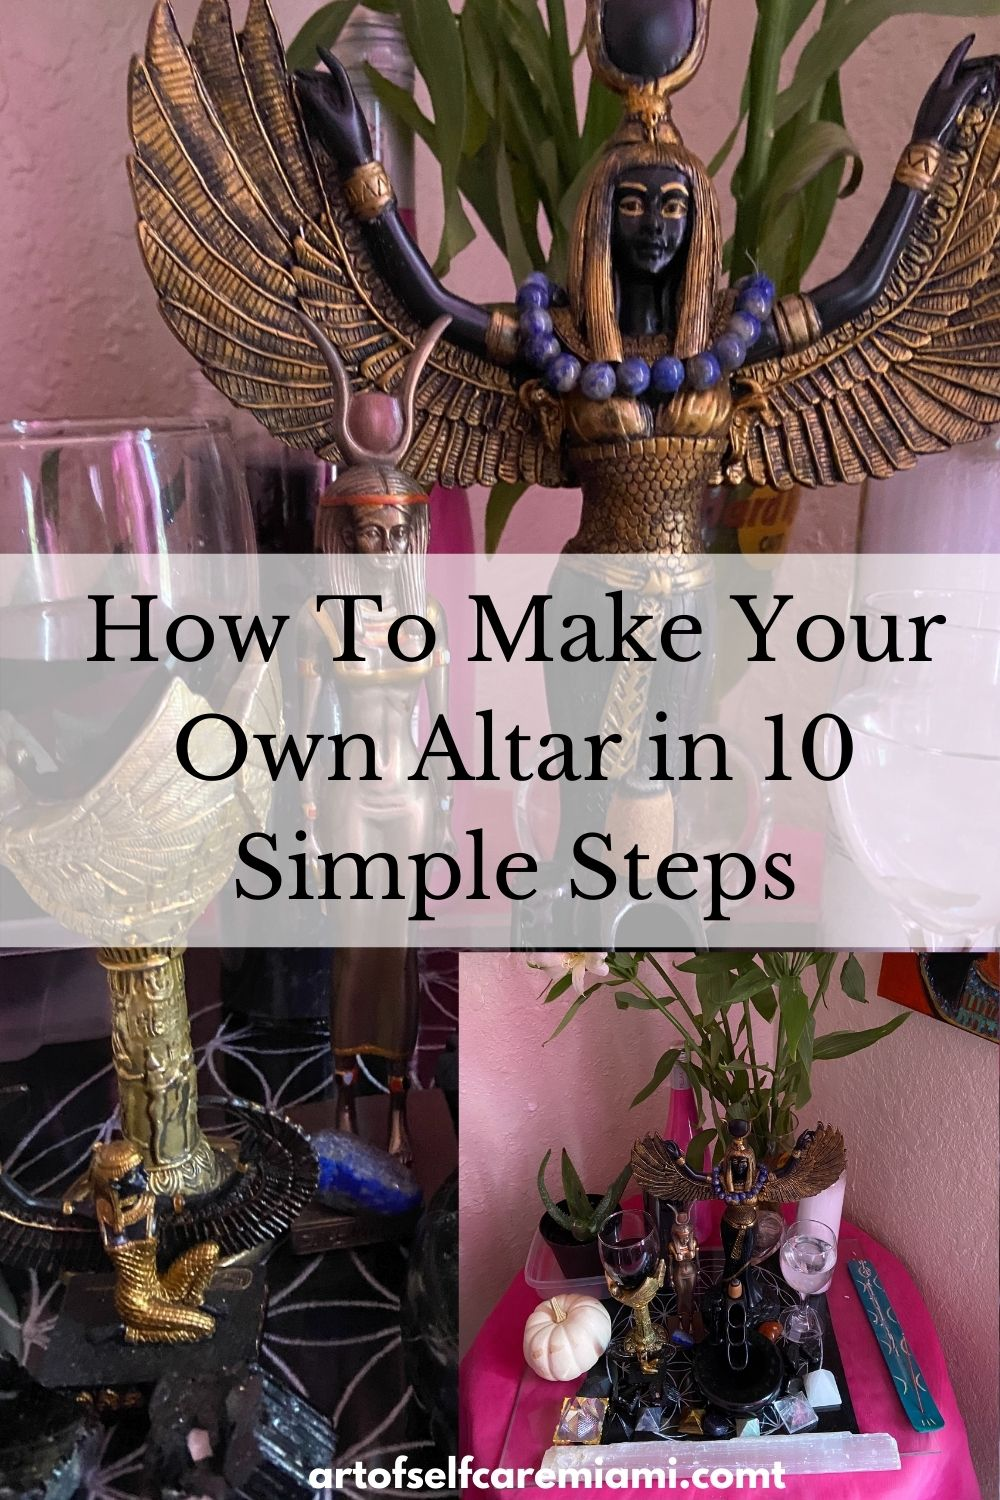 How To Make Your Own Altar In 10 Simple Steps